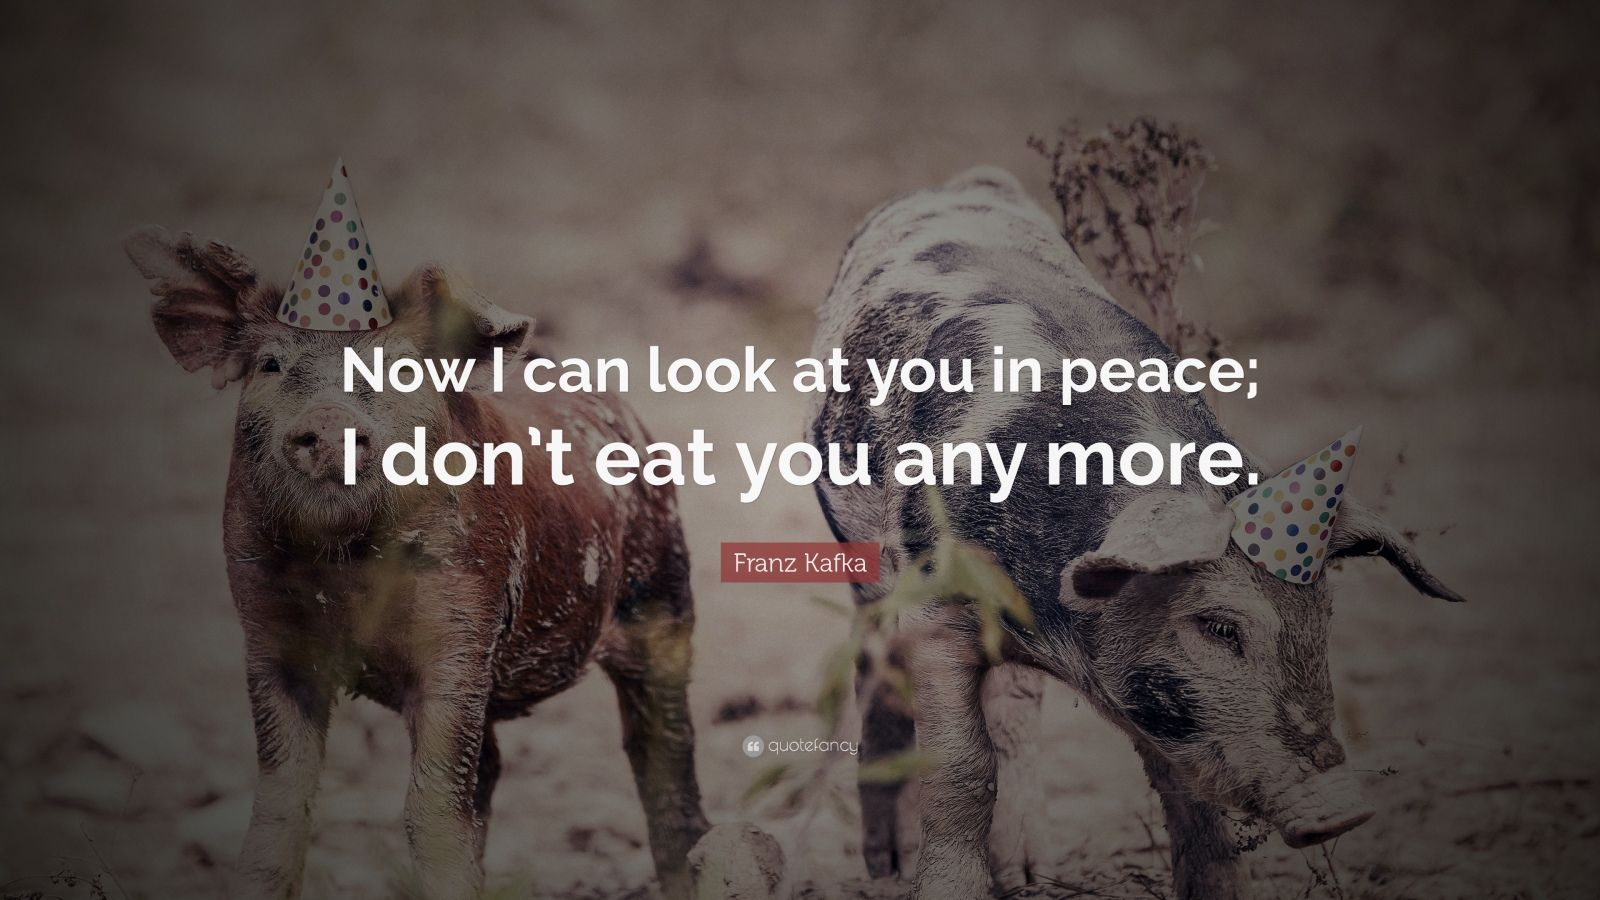 "Quotes About Veganism: ""Now I can look at you in peace; I don't eat you any more."" — Franz Kafka"